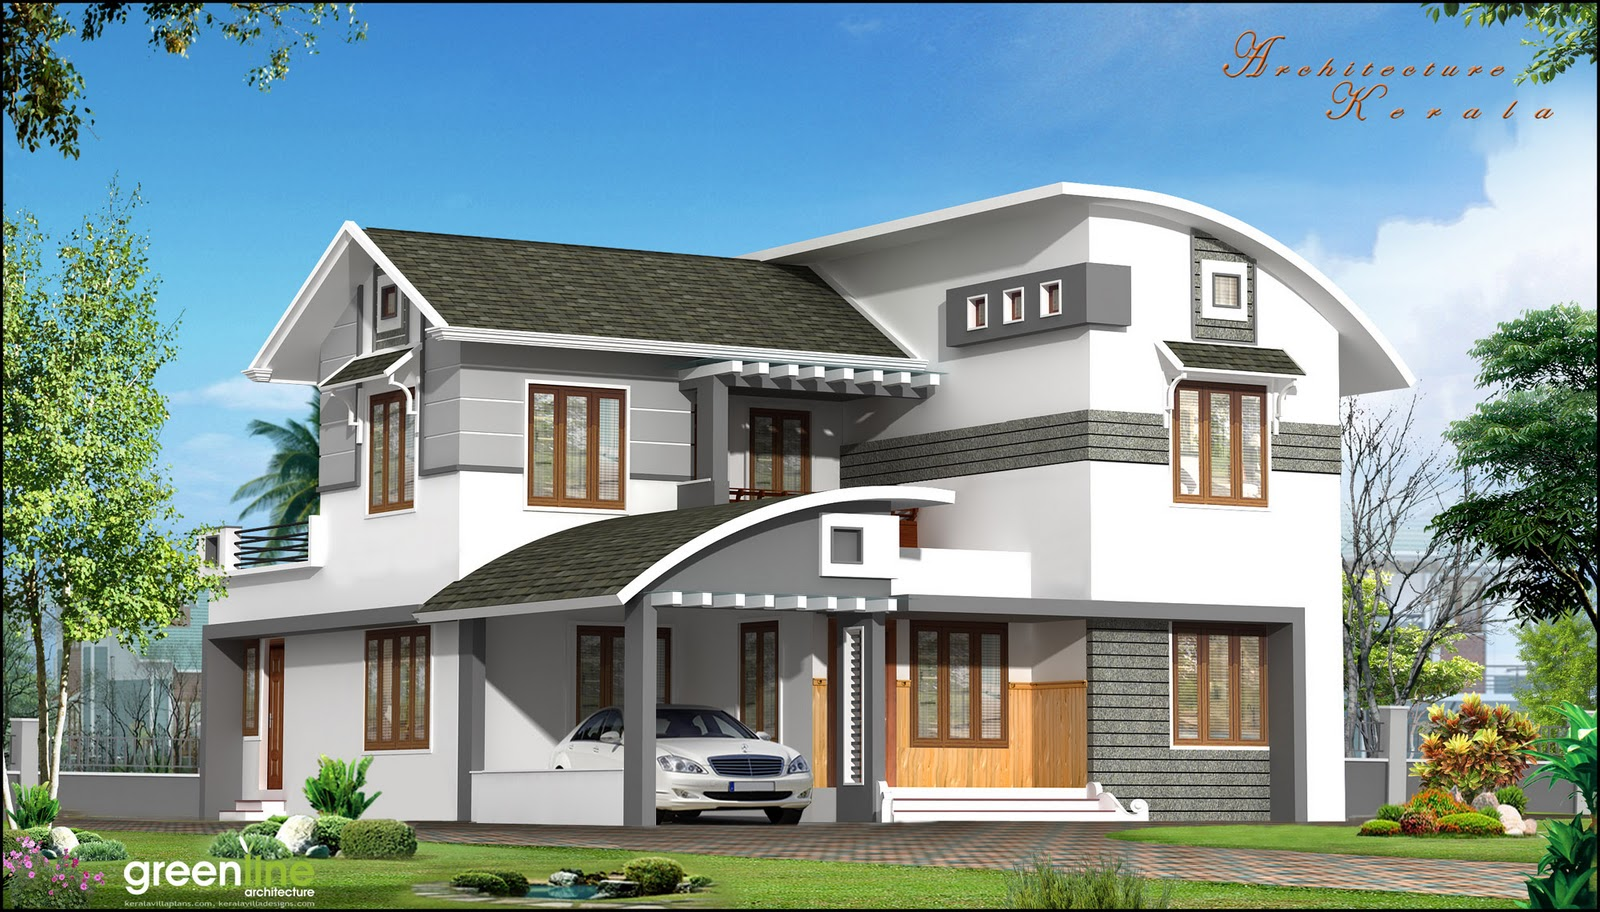 Architecture kerala a beautiful house elevation for Kerala style home designs and elevations